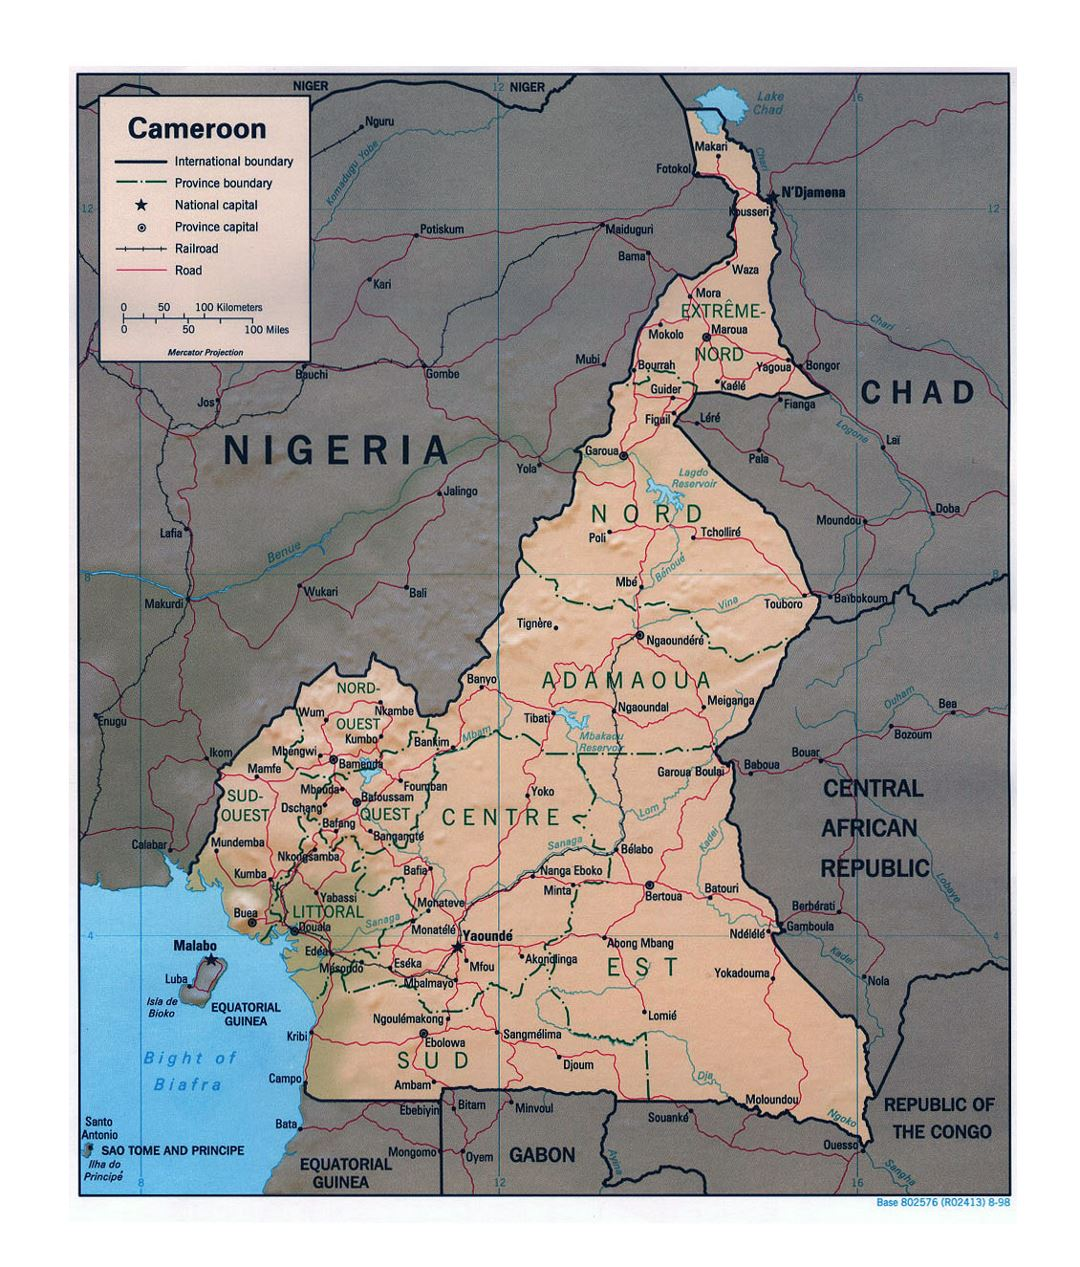 Detailed political and administrative map of Cameroon with relief, roads, railroads and major cities - 1998